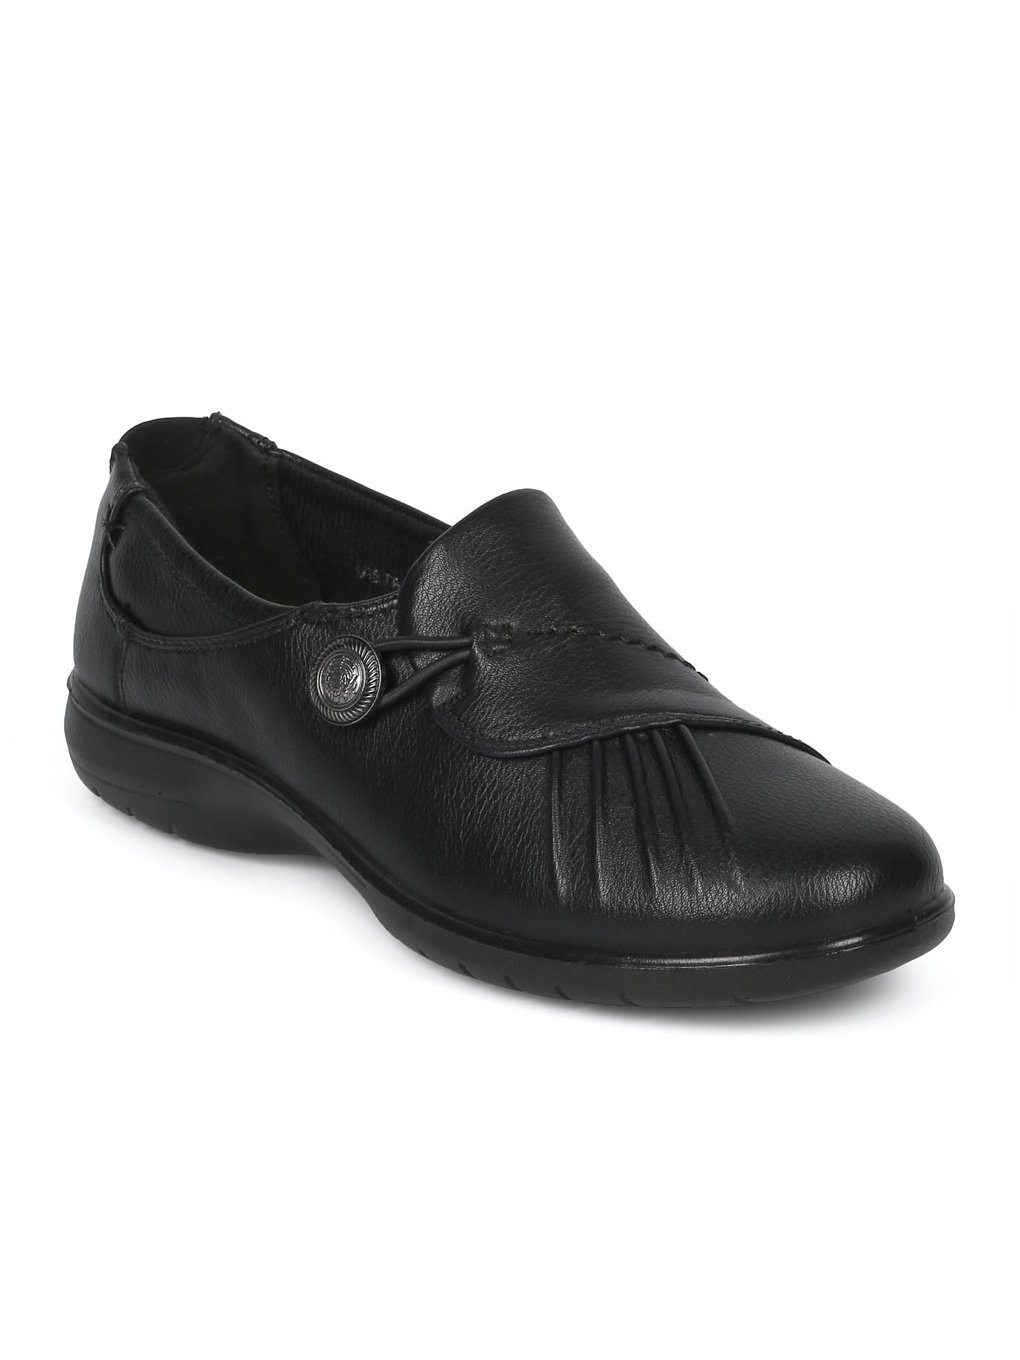 Alrisco Leatherette Pleated Elevated Heel Working Shoe HD93 - Black Leatherette (Size: 6.5)